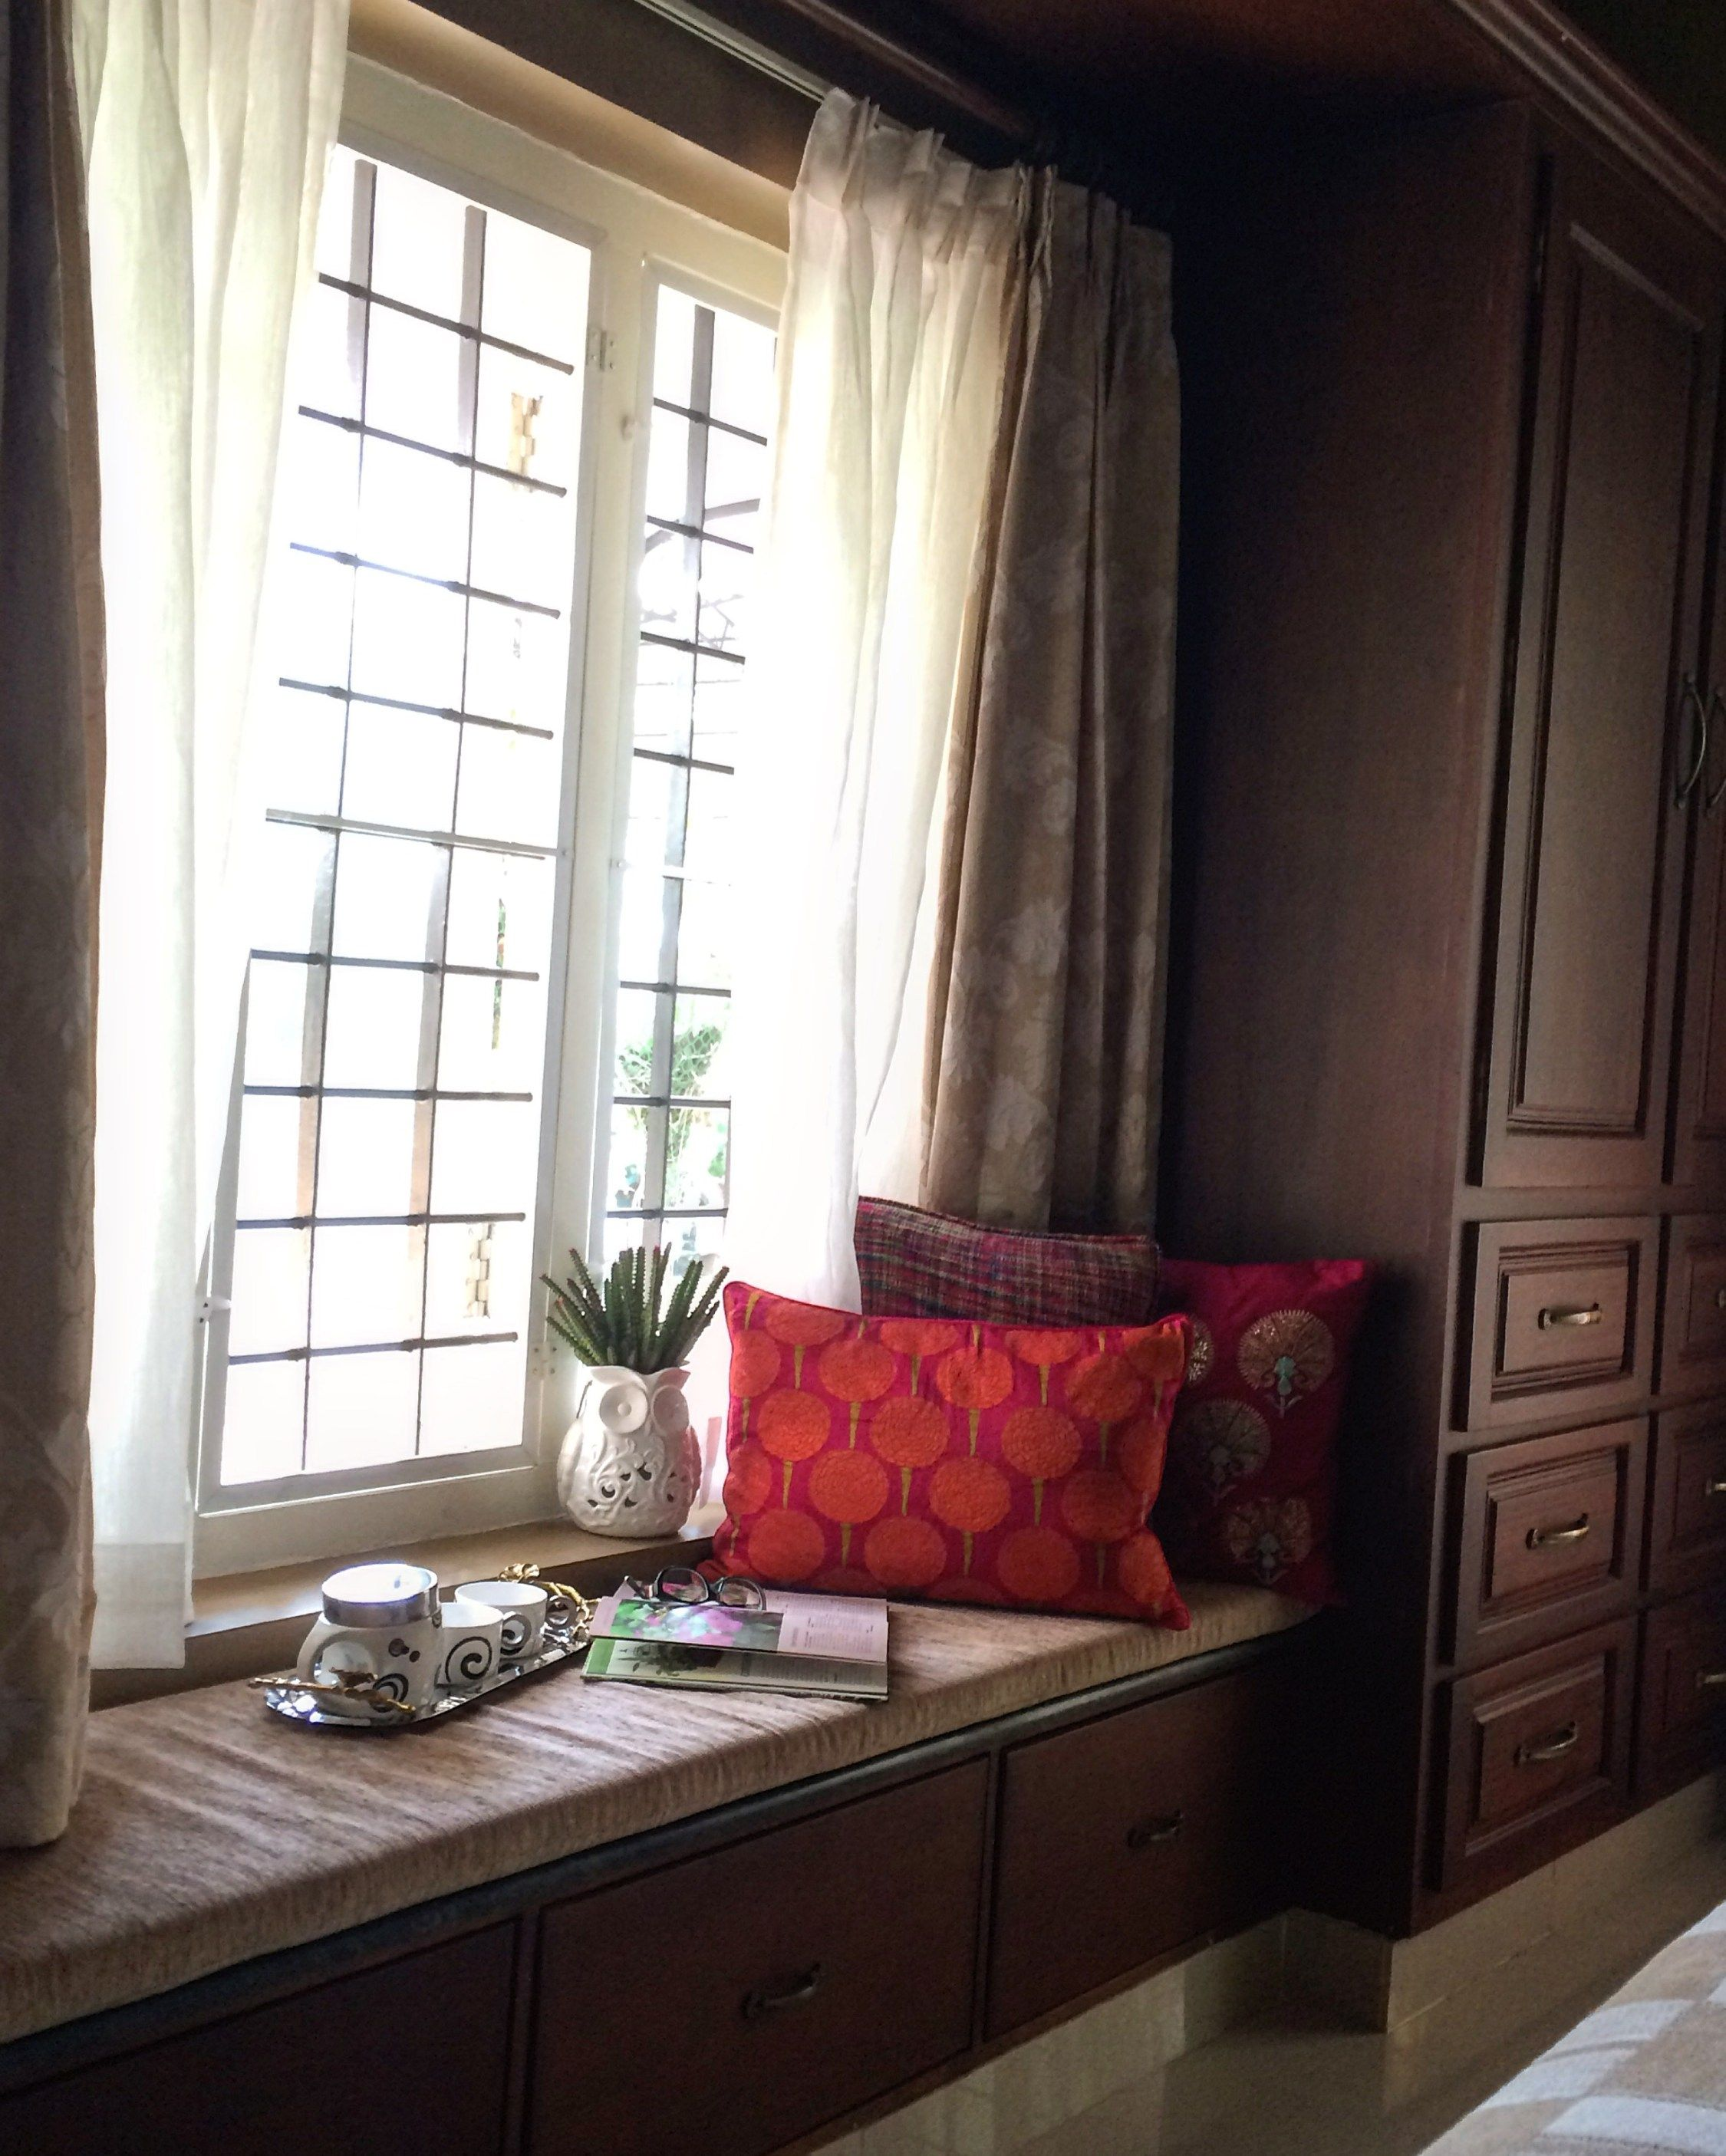 Home Design Ideas Bangalore: After An Eventful Stay In Bangalore, And A Gorgeous Home